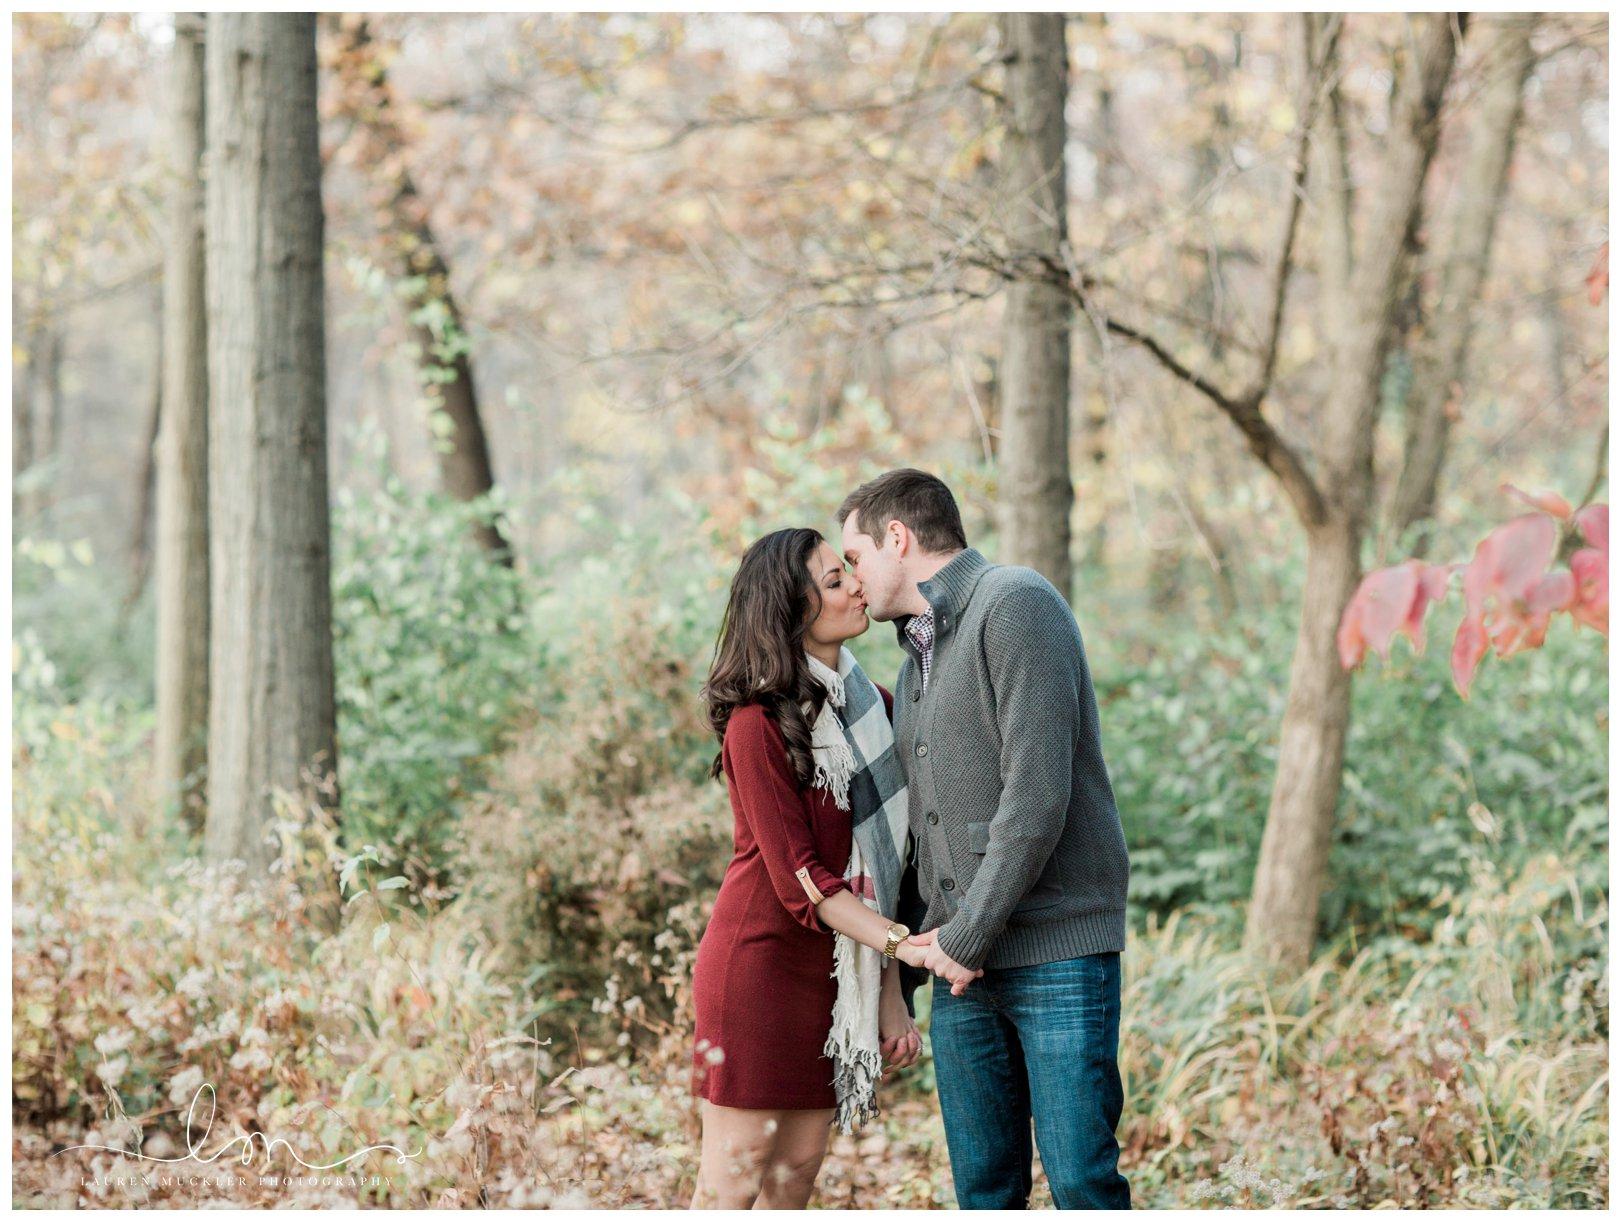 lauren muckler photography_fine art film wedding photography_st louis_photography_0789.jpg